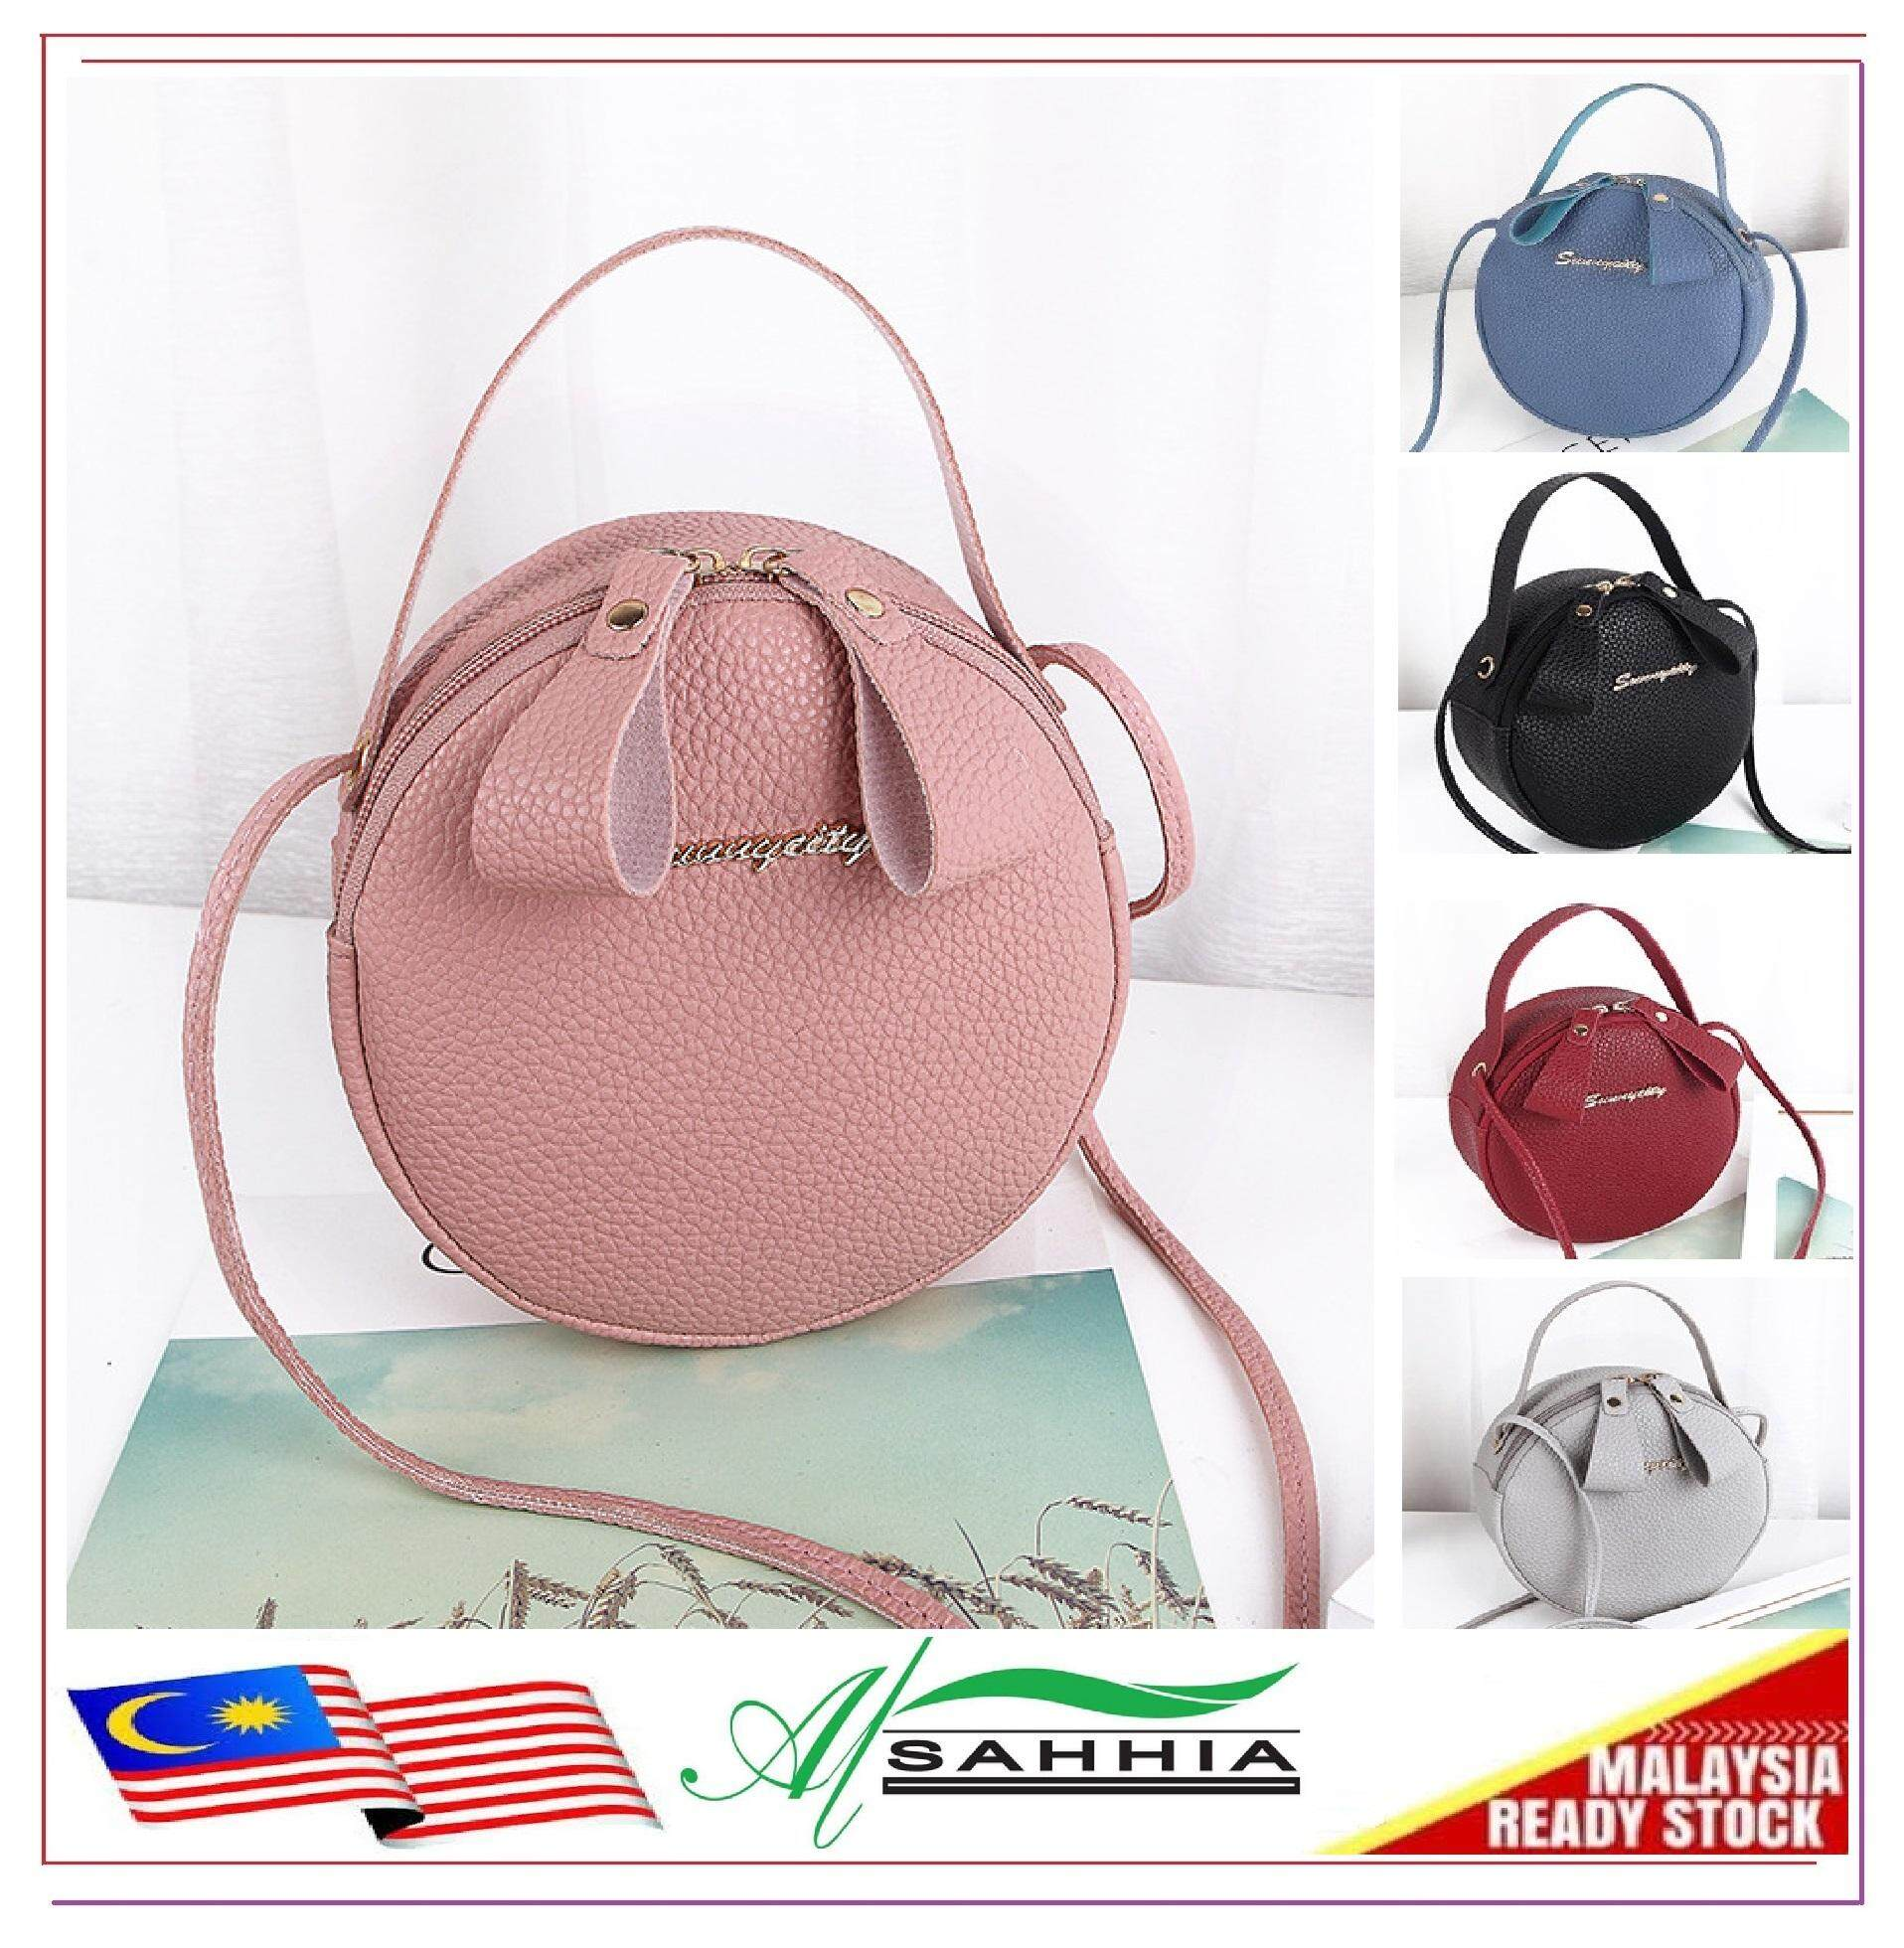 Women Tote Bags - Buy Women Tote Bags at Best Price in Malaysia ... a74b41e87d03c